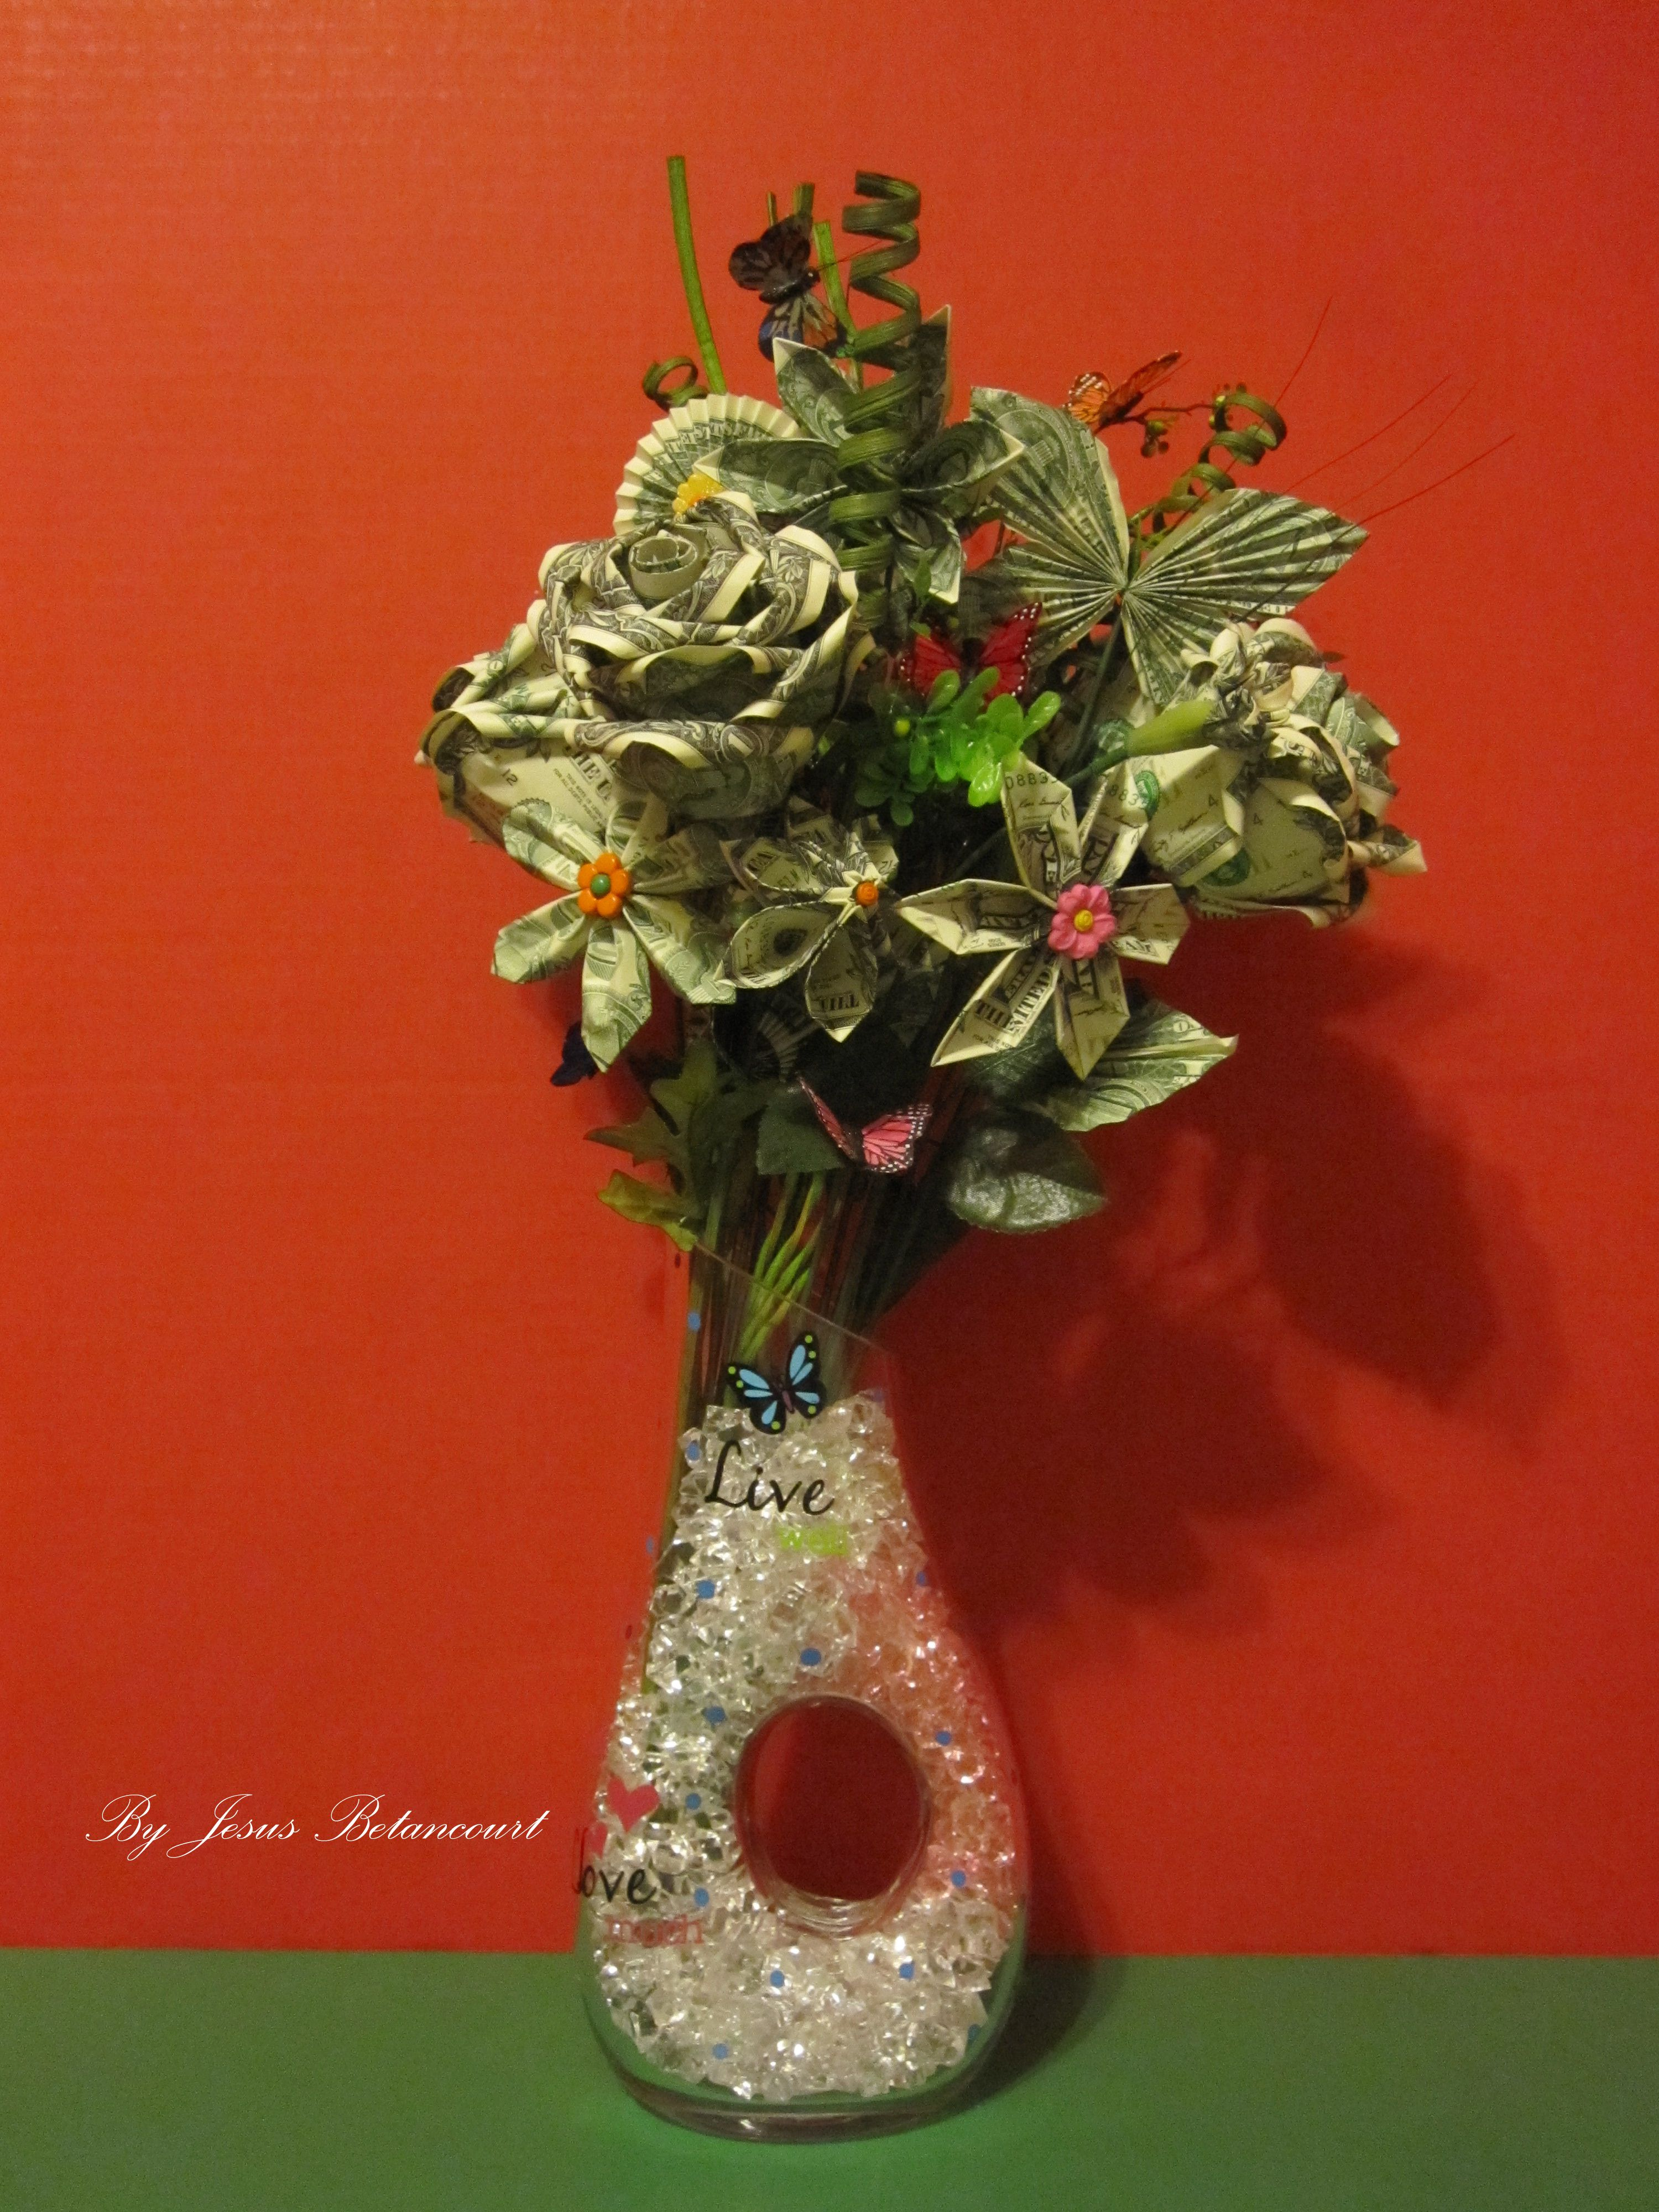 Flowers made of real dollar bills dollar origami pinterest flowers made of real dollar bills mightylinksfo Choice Image